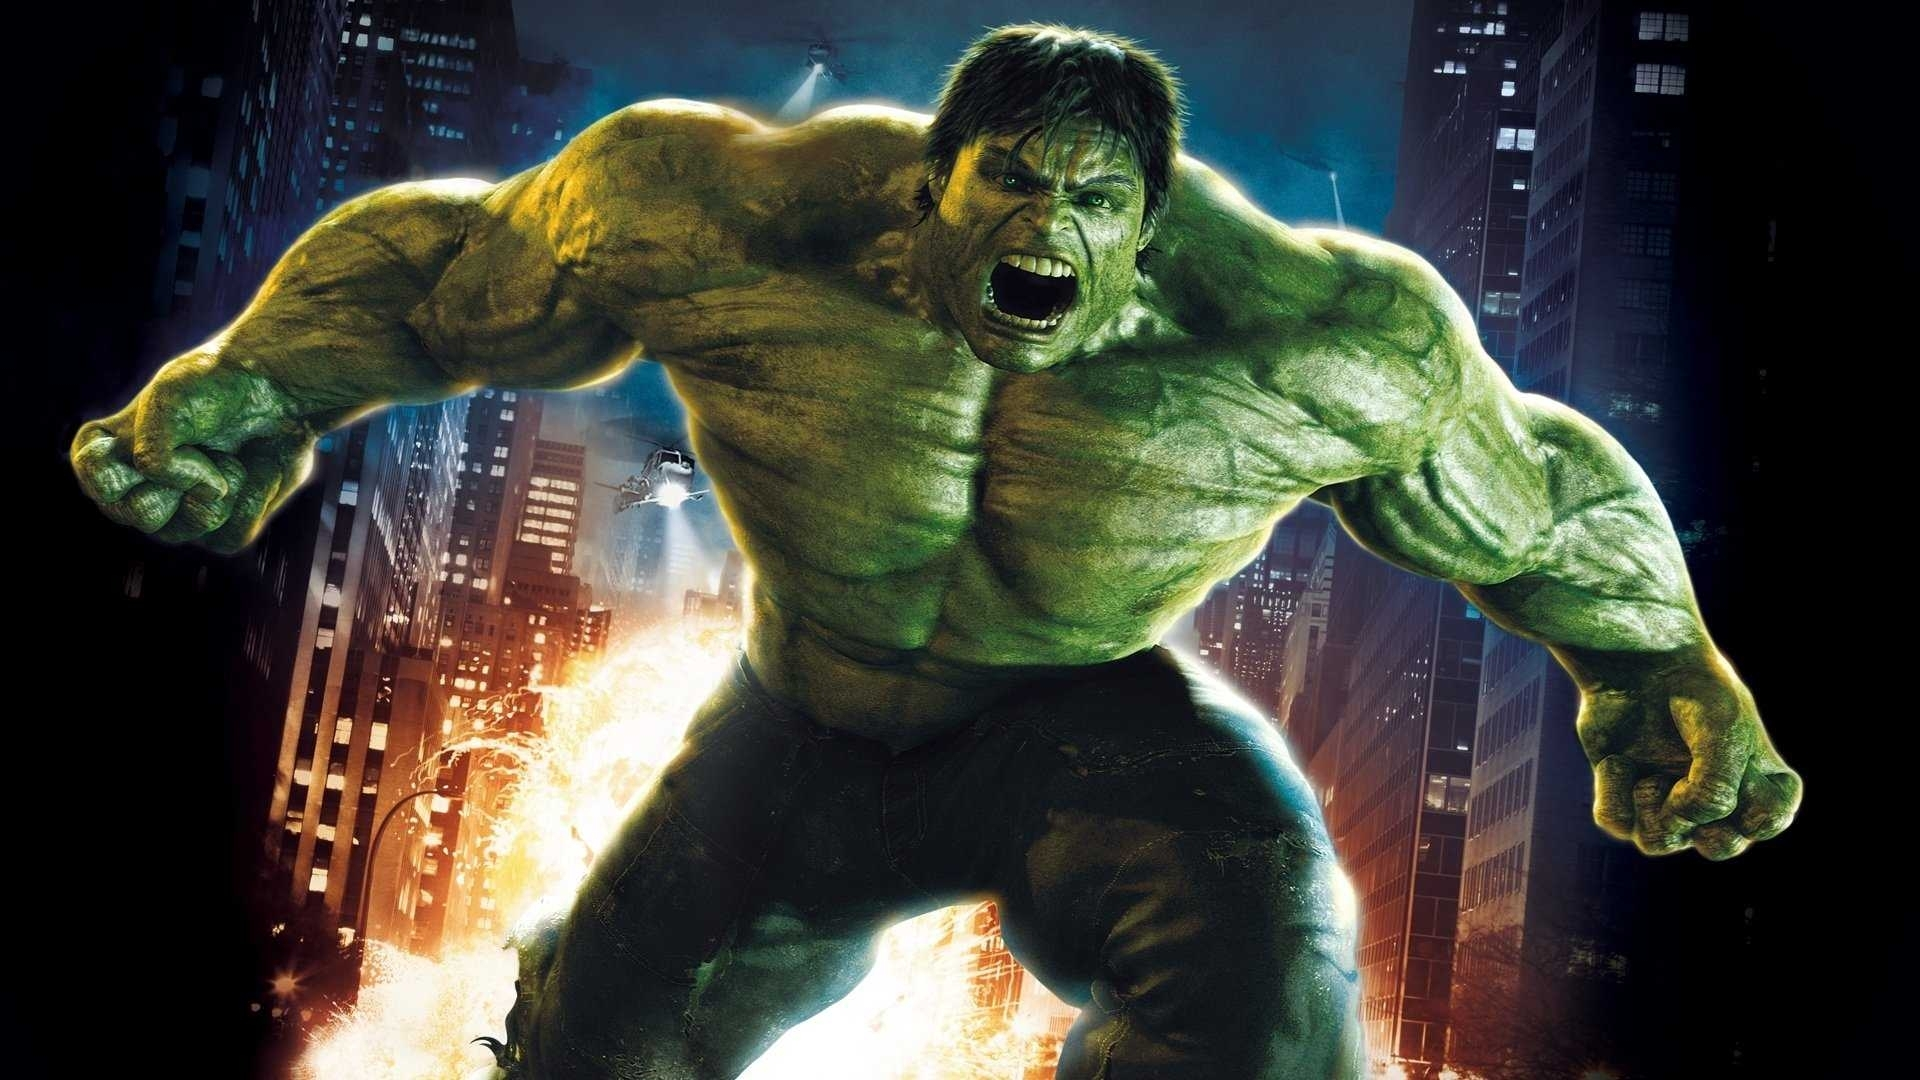 wallpaper hd for hulk full and background image images pc ~ waraqh